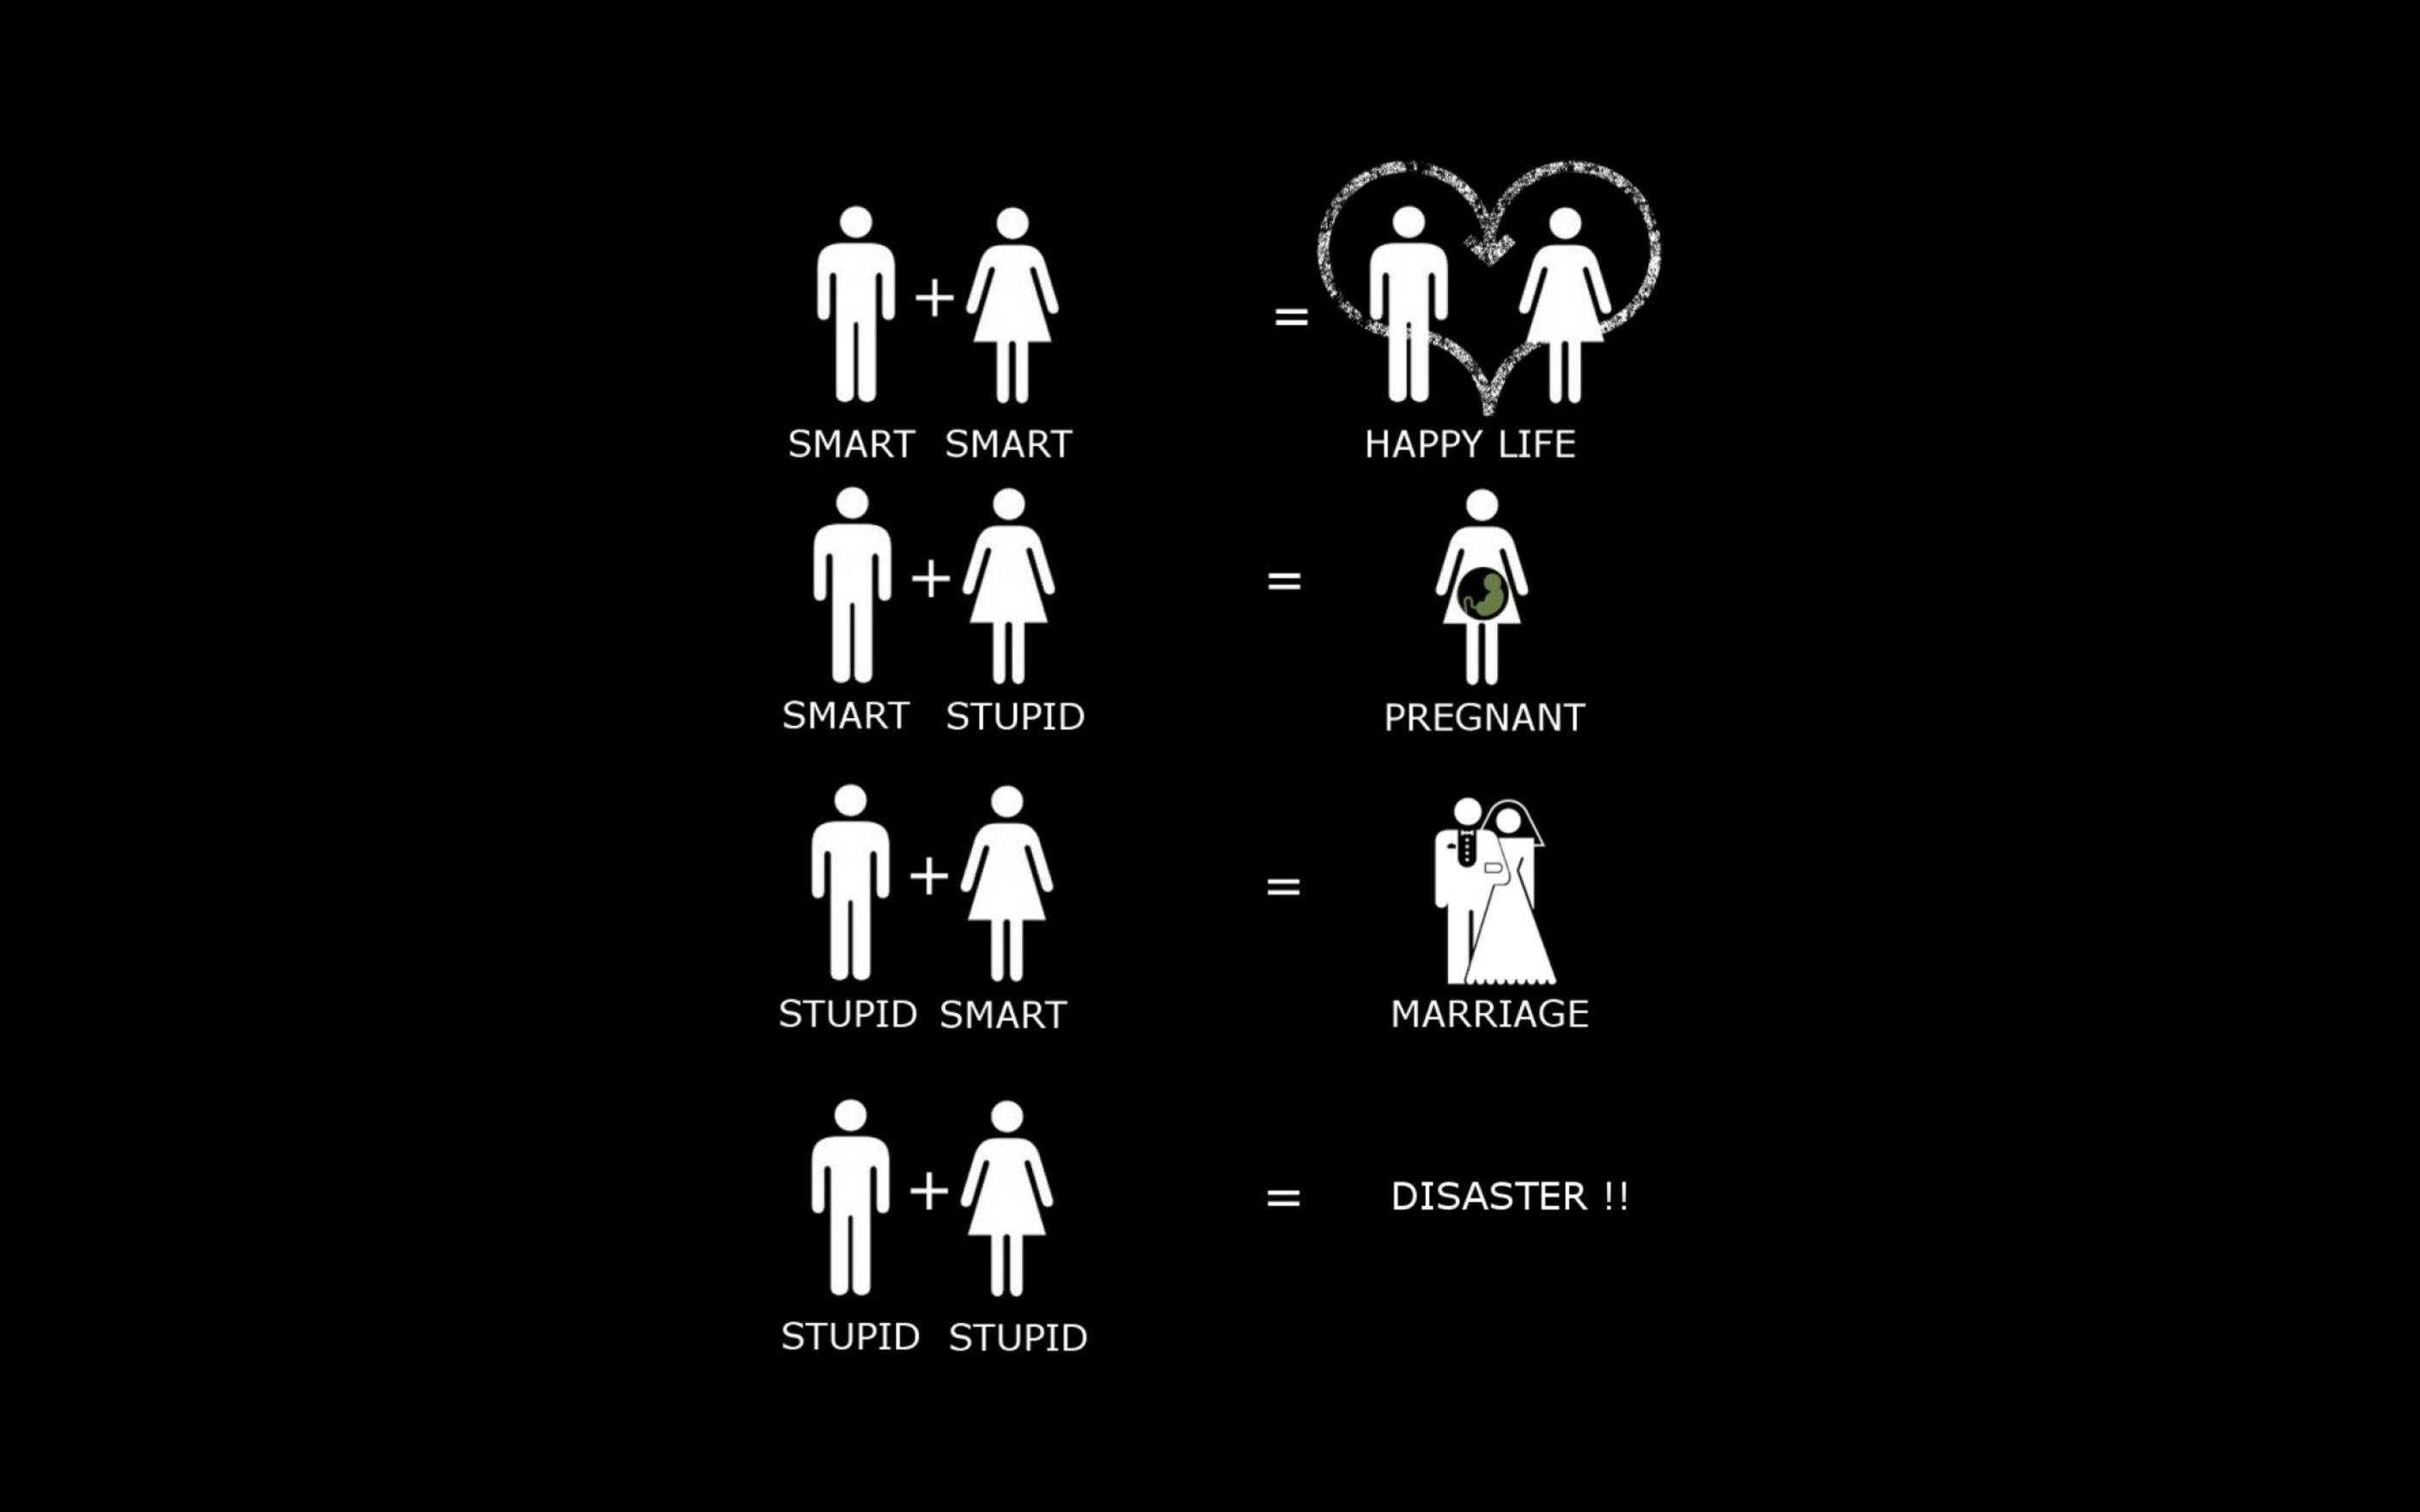 Download free HD Funny Marriage Wallpaper, image